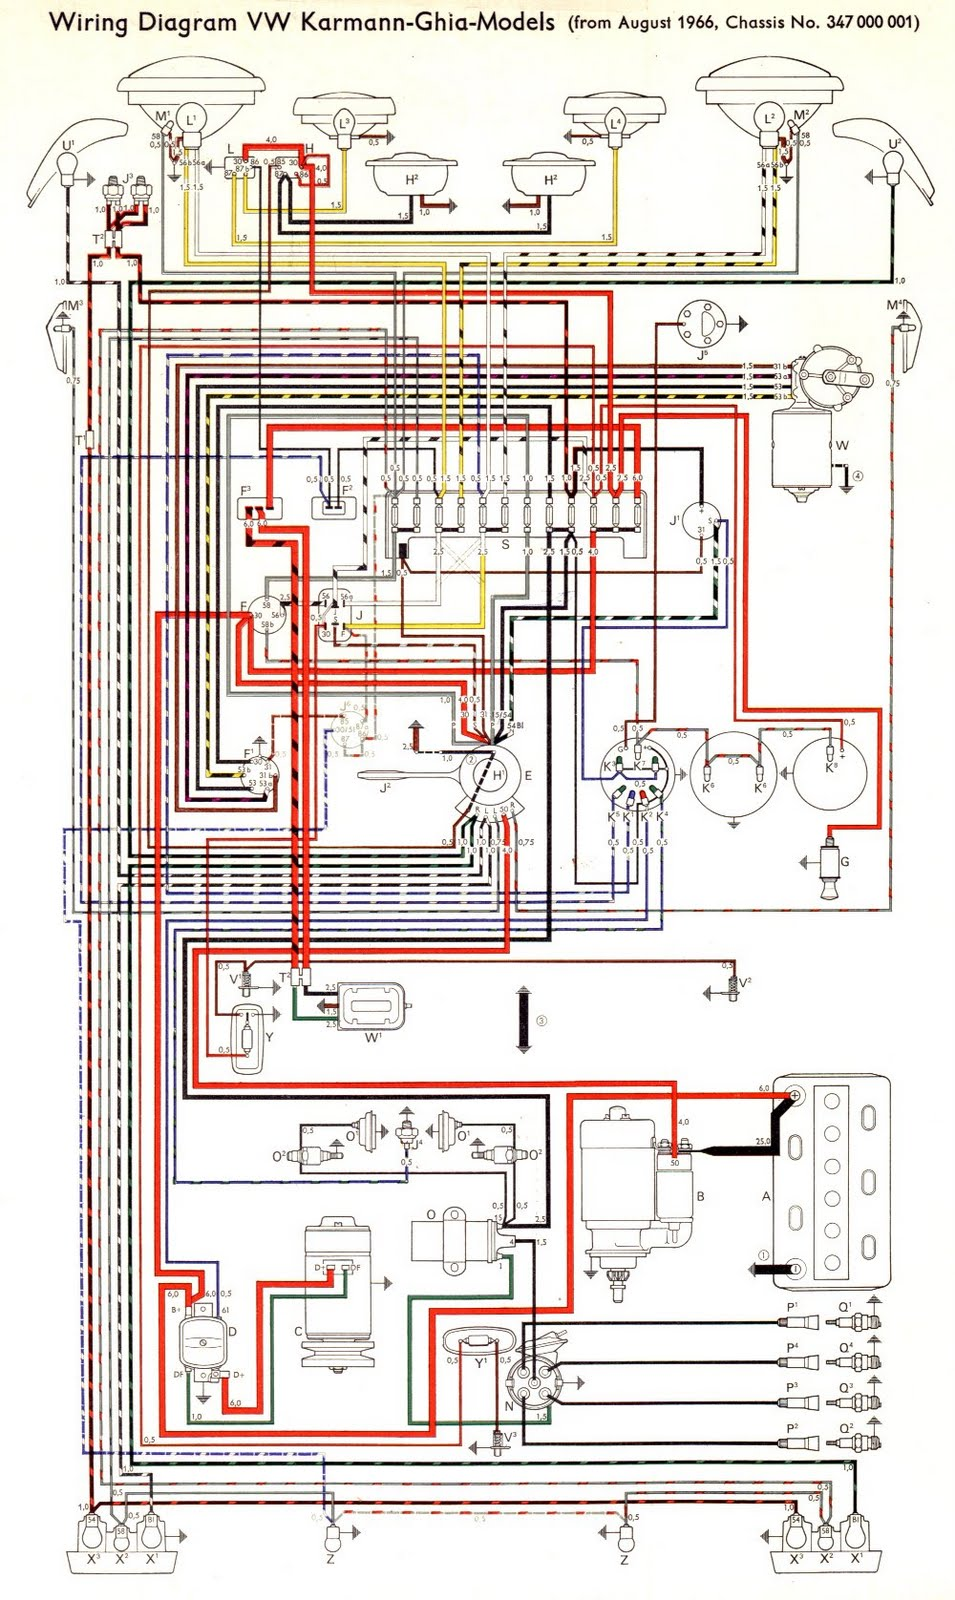 Vw Karmann Ghia Models Wiring Diagram on 1937 plymouth wiring diagram